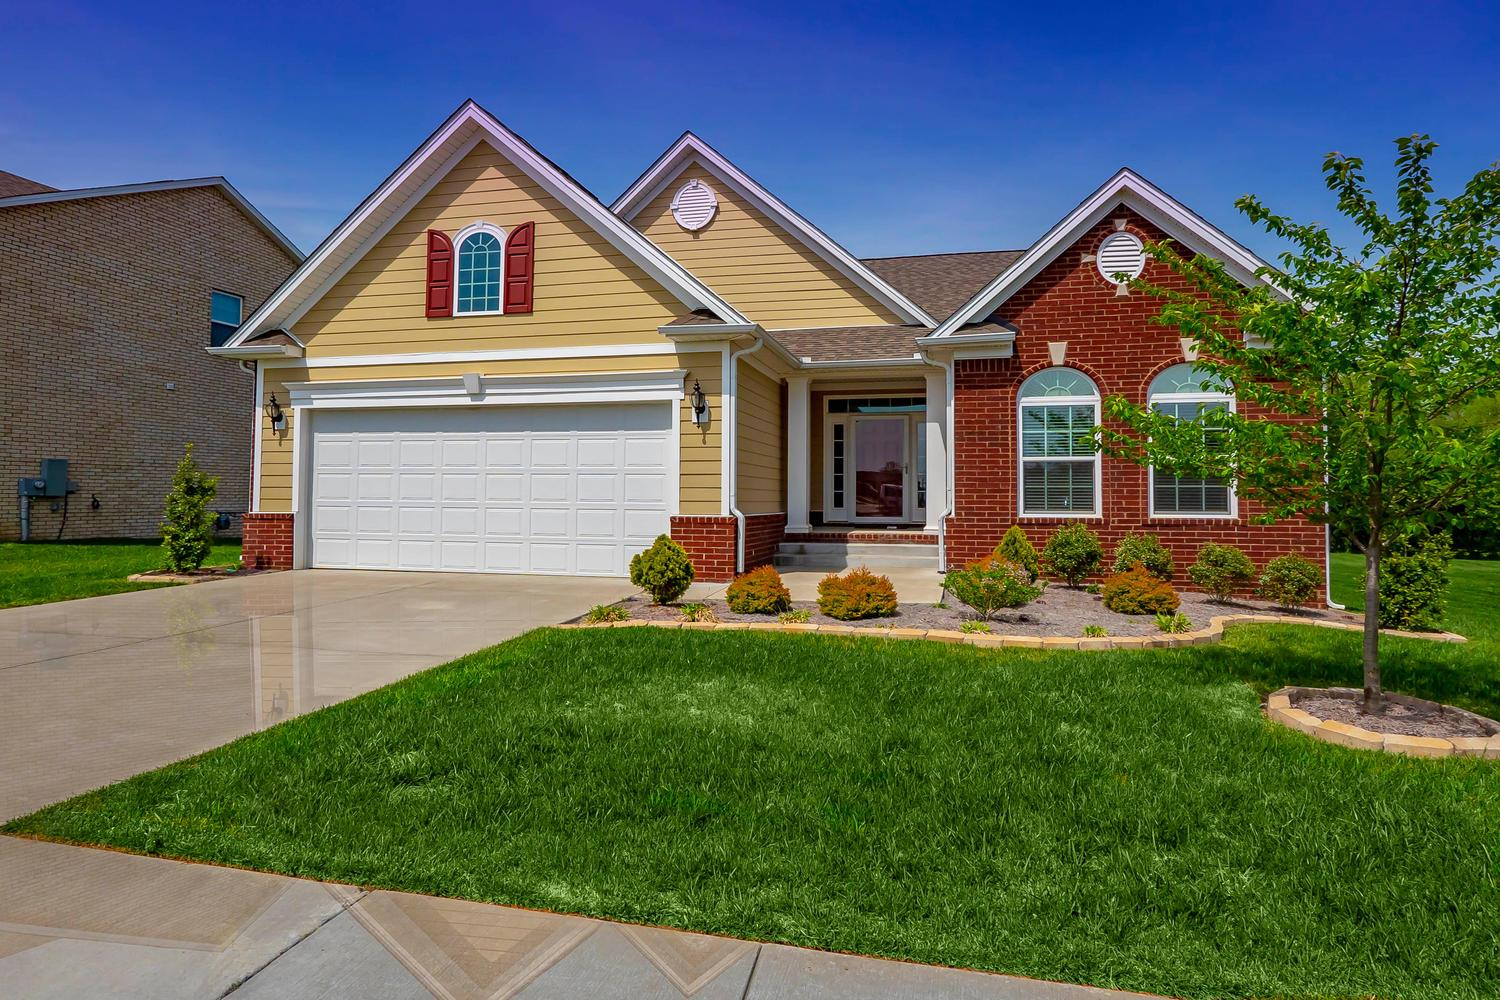 431 Goodman Dr, Gallatin in Sumner County County, TN 37066 Home for Sale